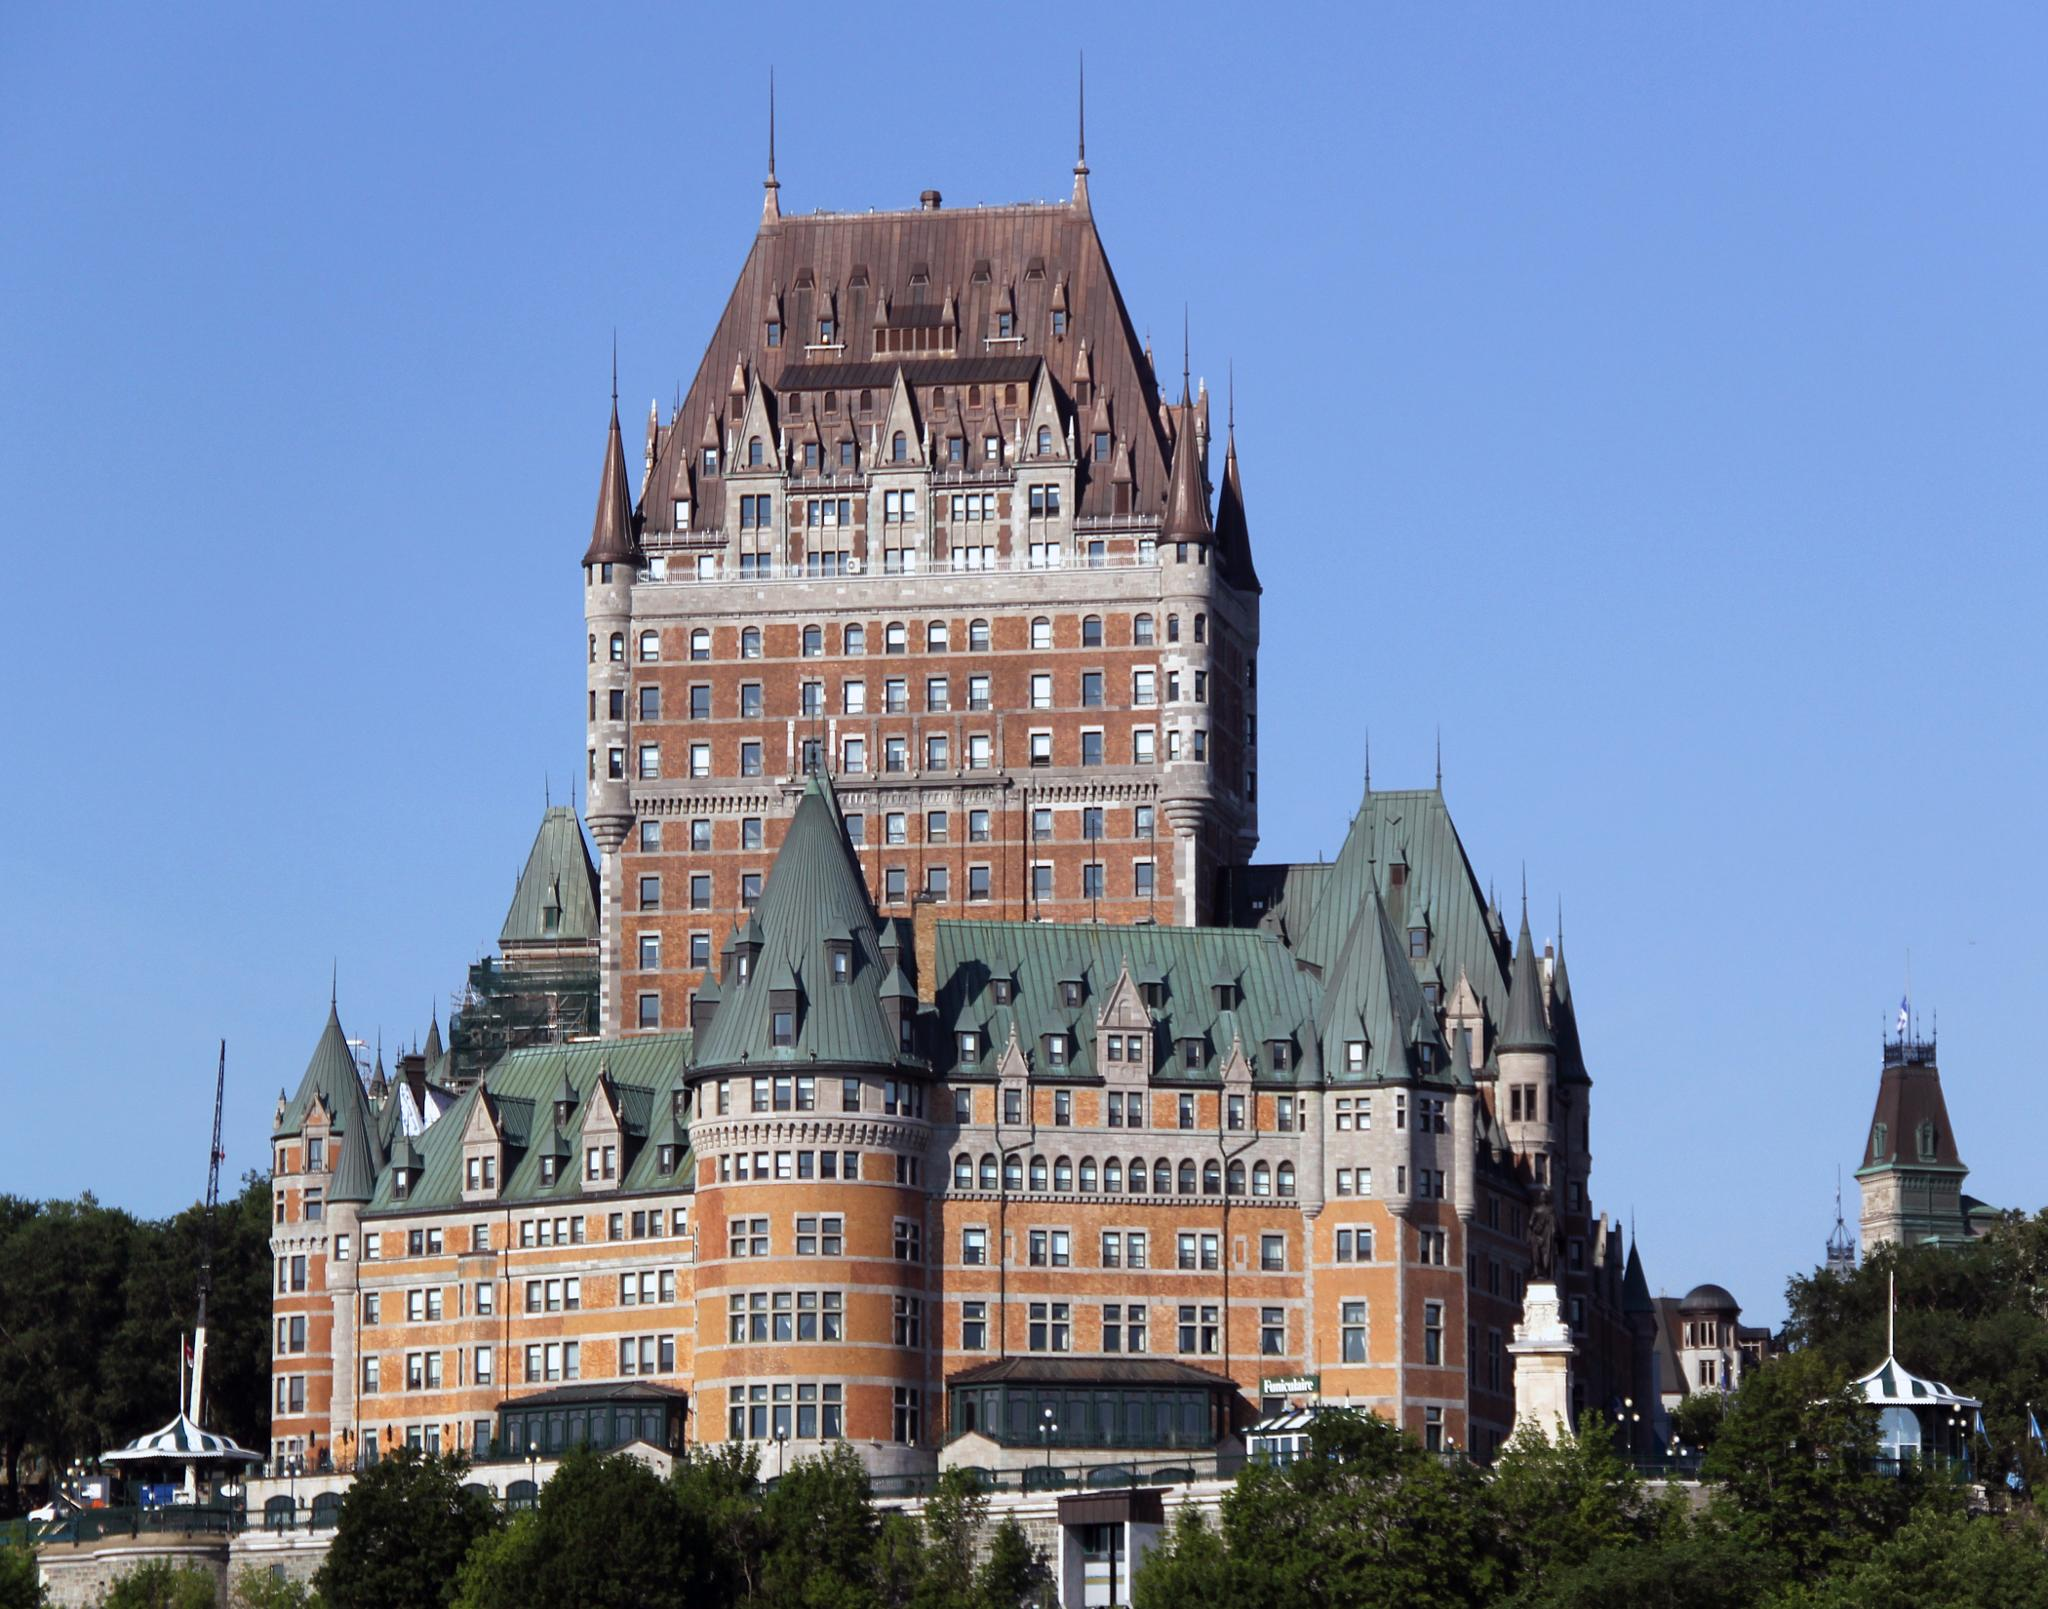 Chateau Frontenac by Laurence (Sam) Warriner